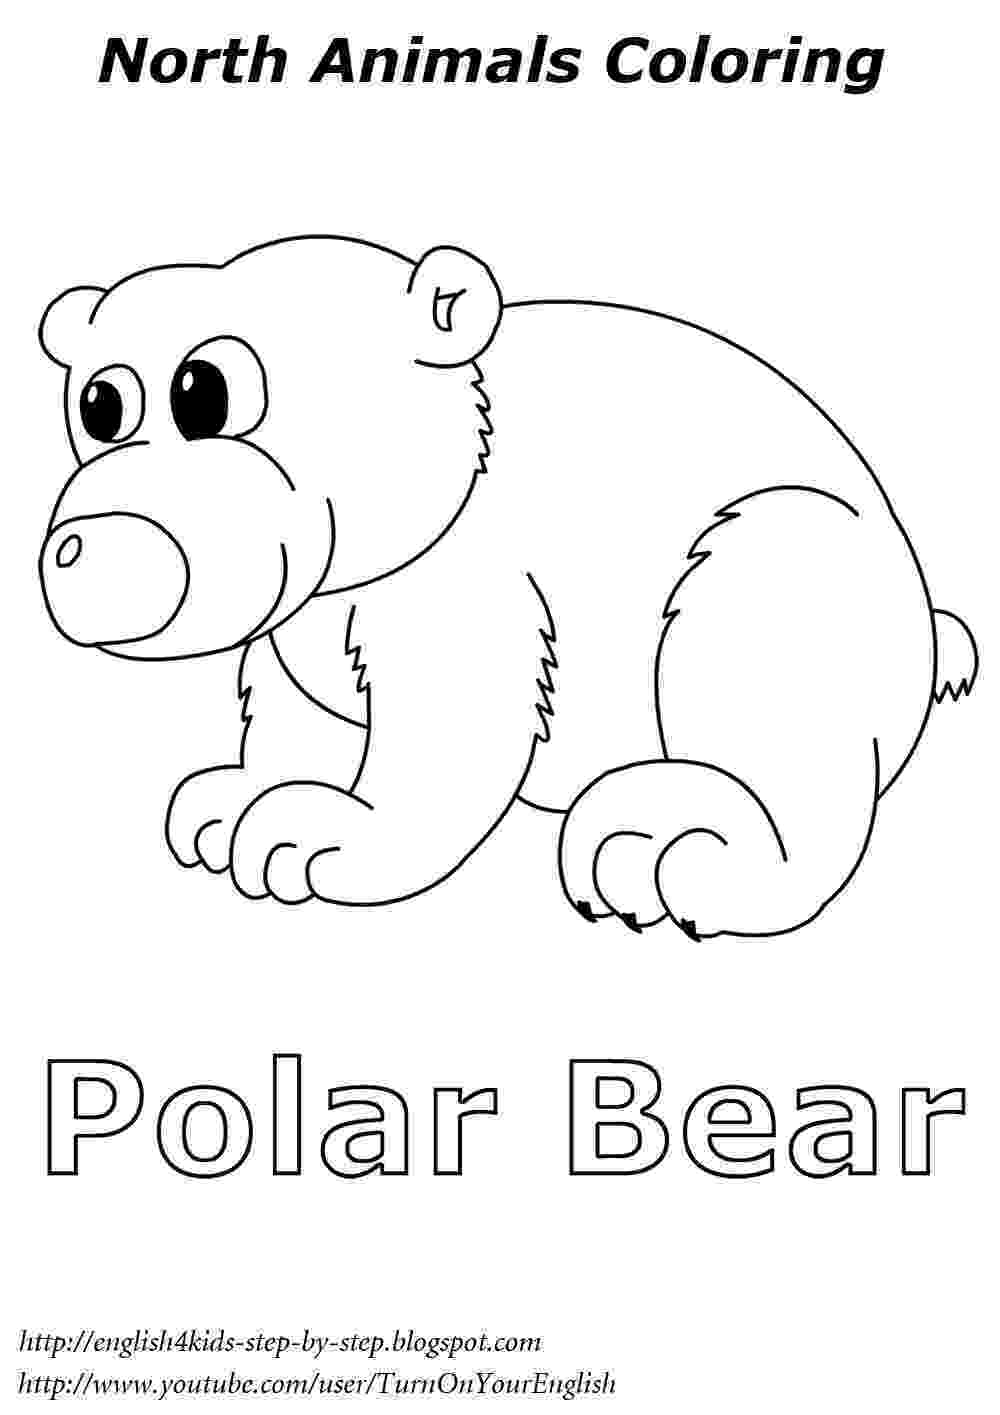 arctic animals coloring pages for preschoolers winter weather wear preschool worksheet what would you pages coloring preschoolers arctic for animals